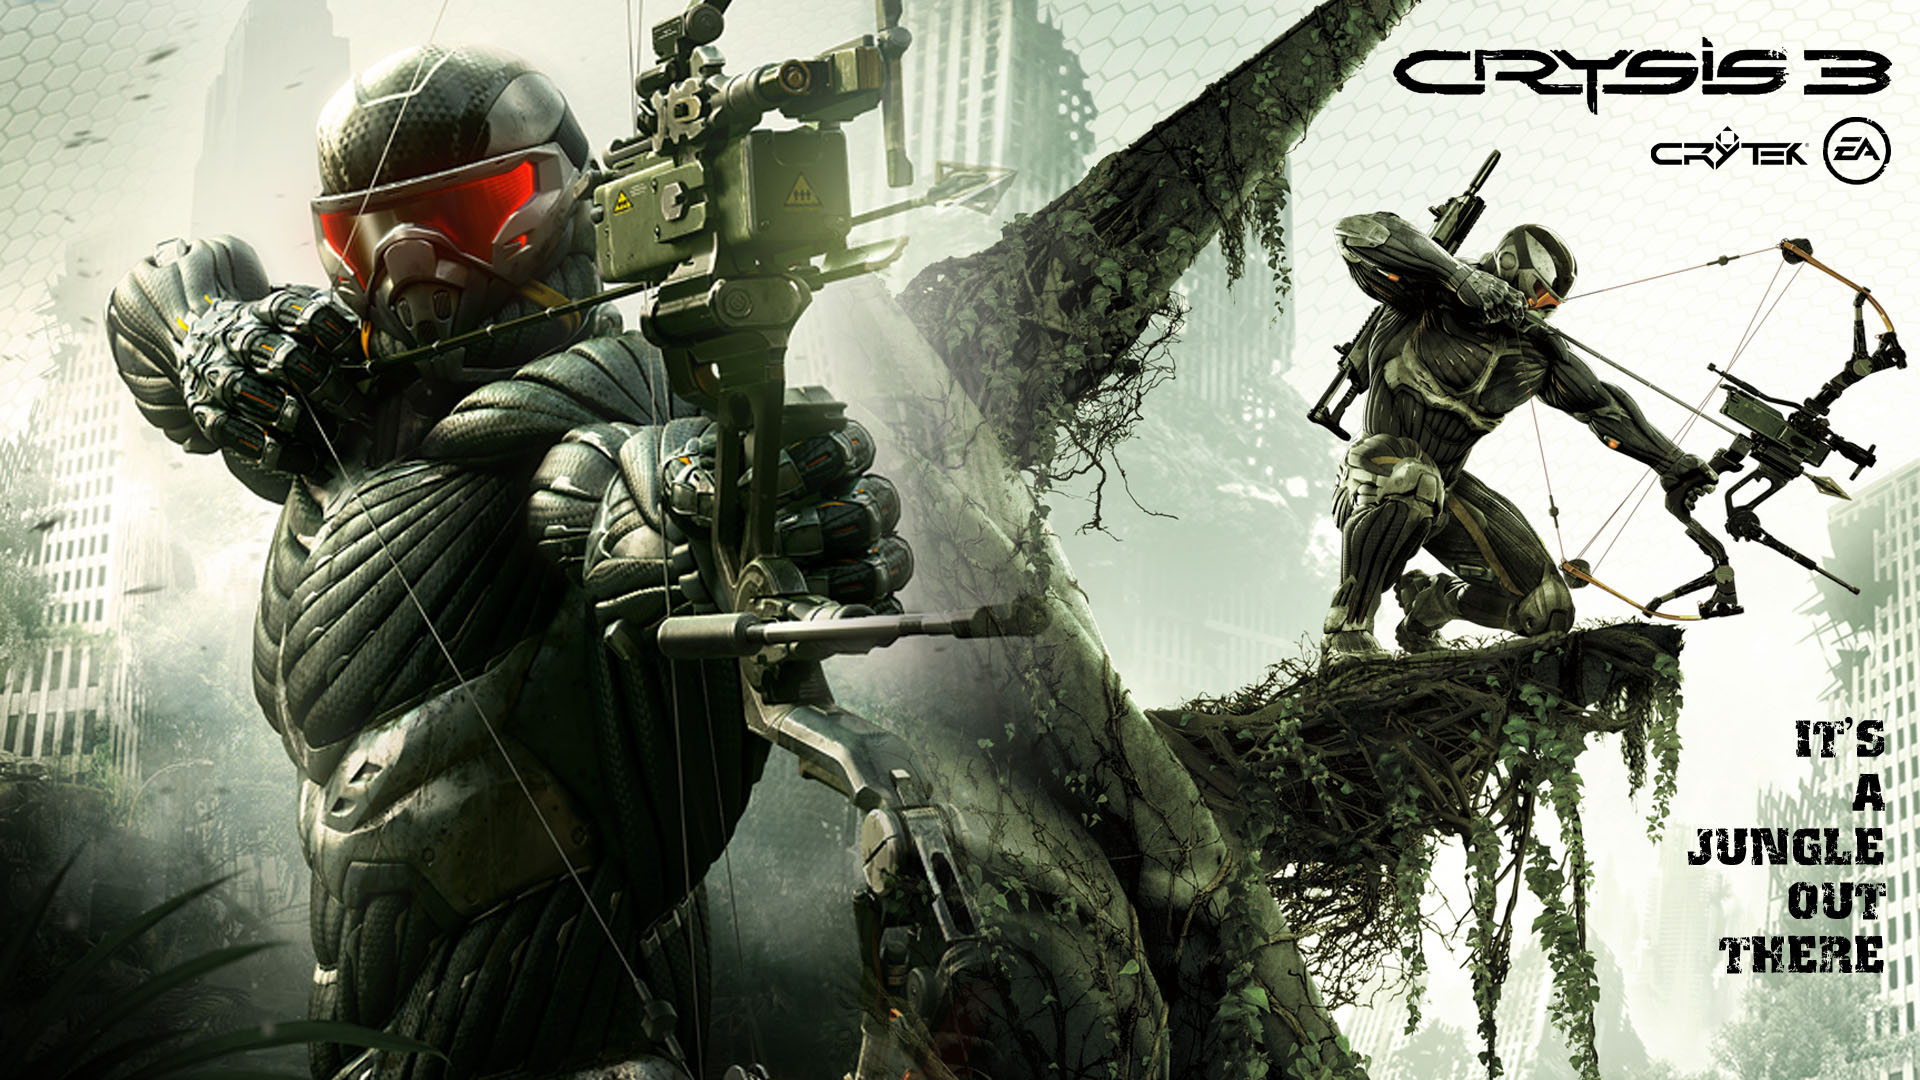 Mw3 3d Wallpapers Crysis 3 Wallpaper Image Picture 7947 Wallpaper